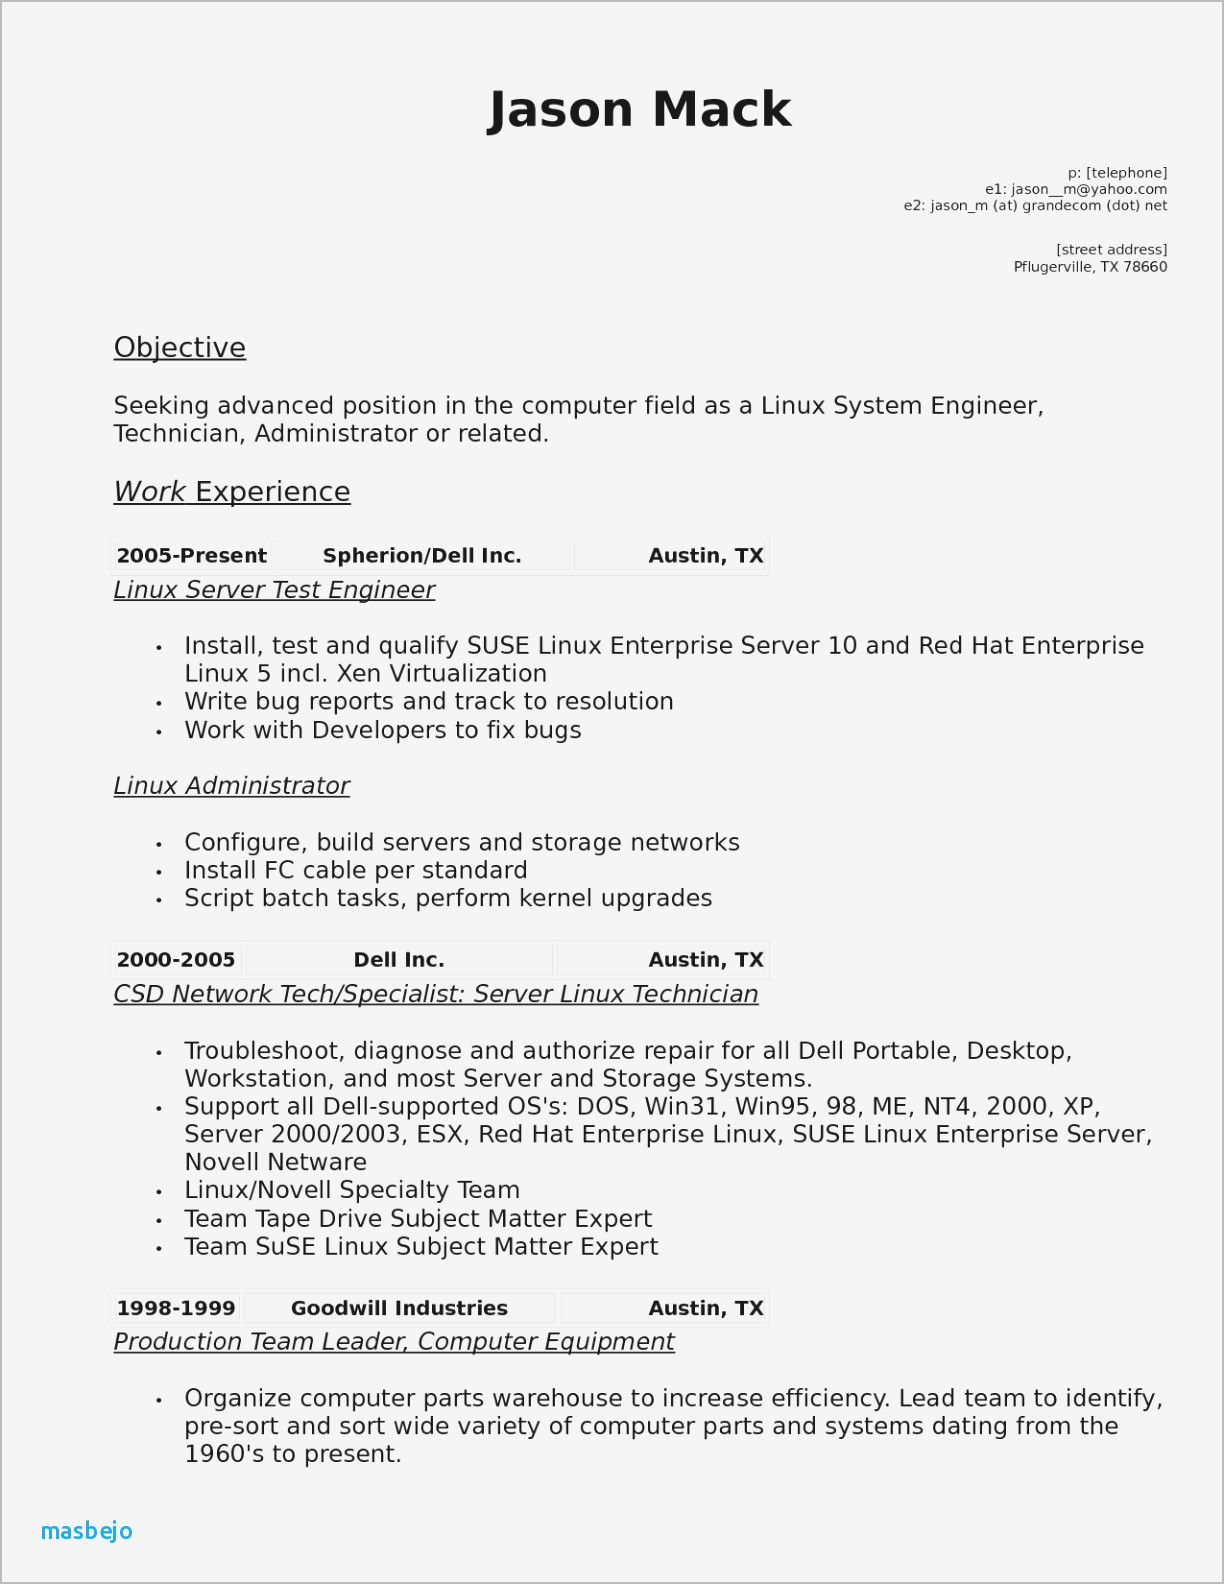 Technical Resume Template - Pharmacist Resume Example Pharmacy Tech Template Fresh Obama